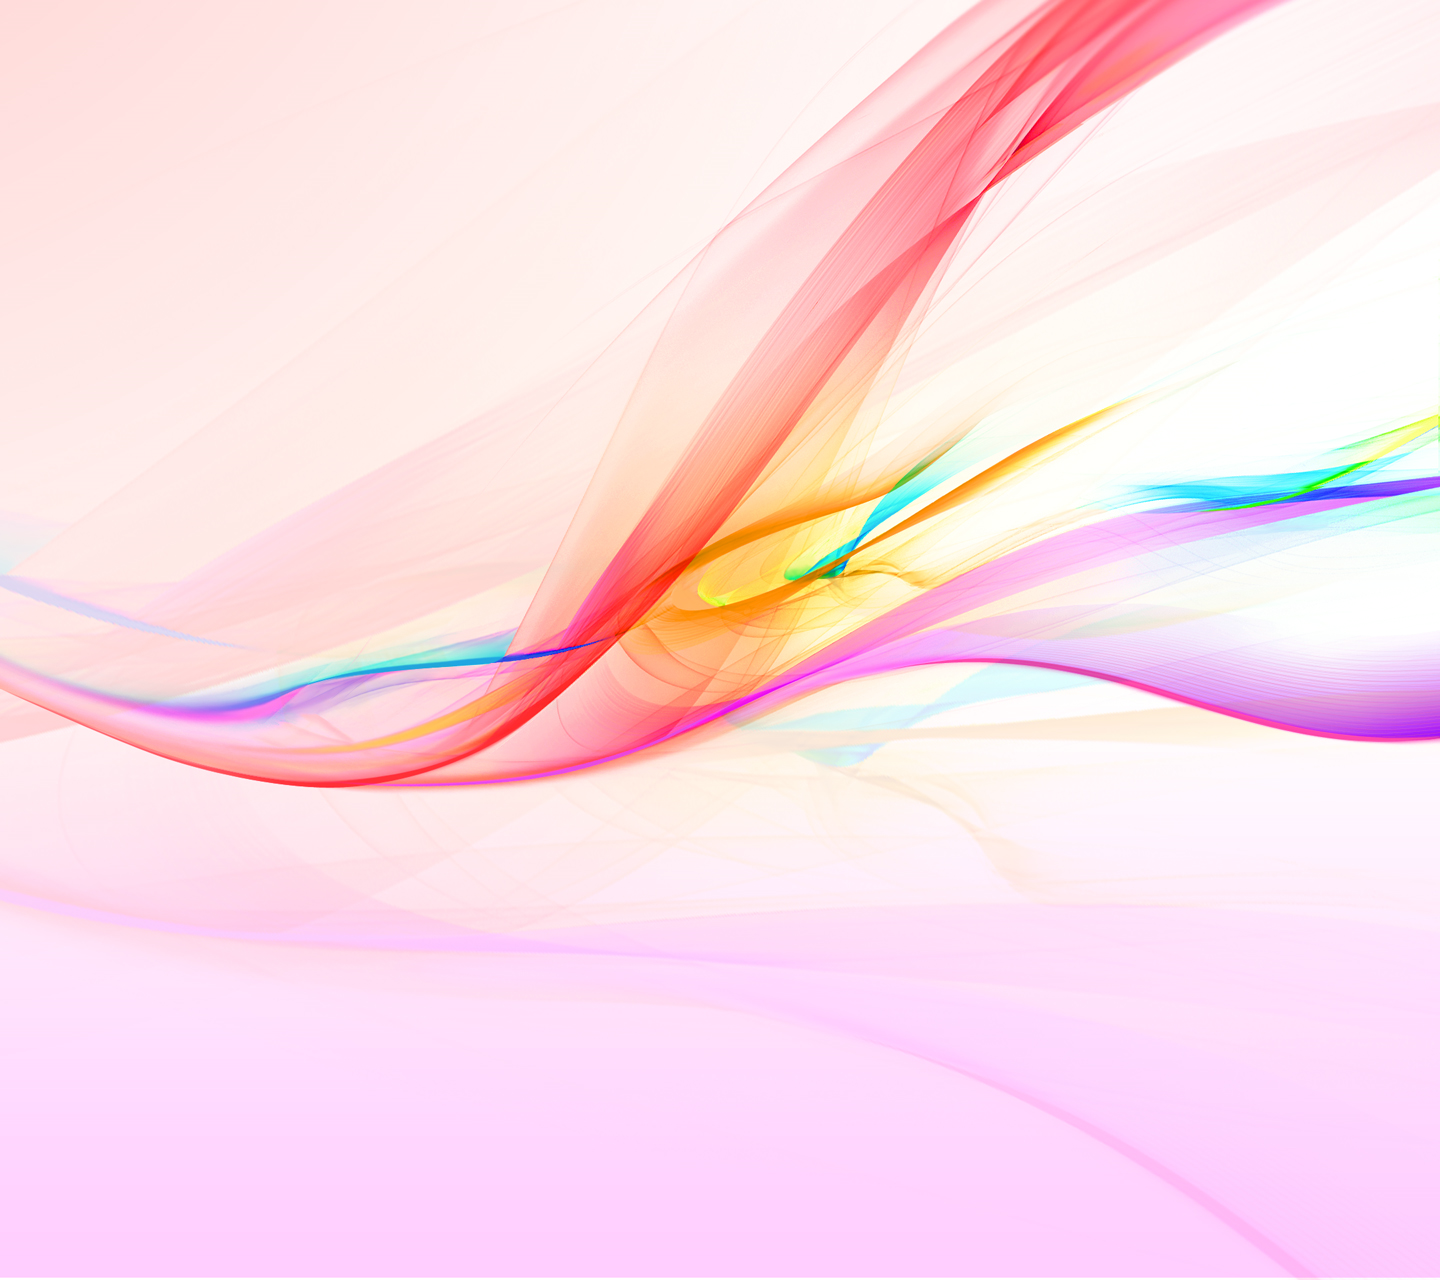 Pink Xperia Z Wallpaper